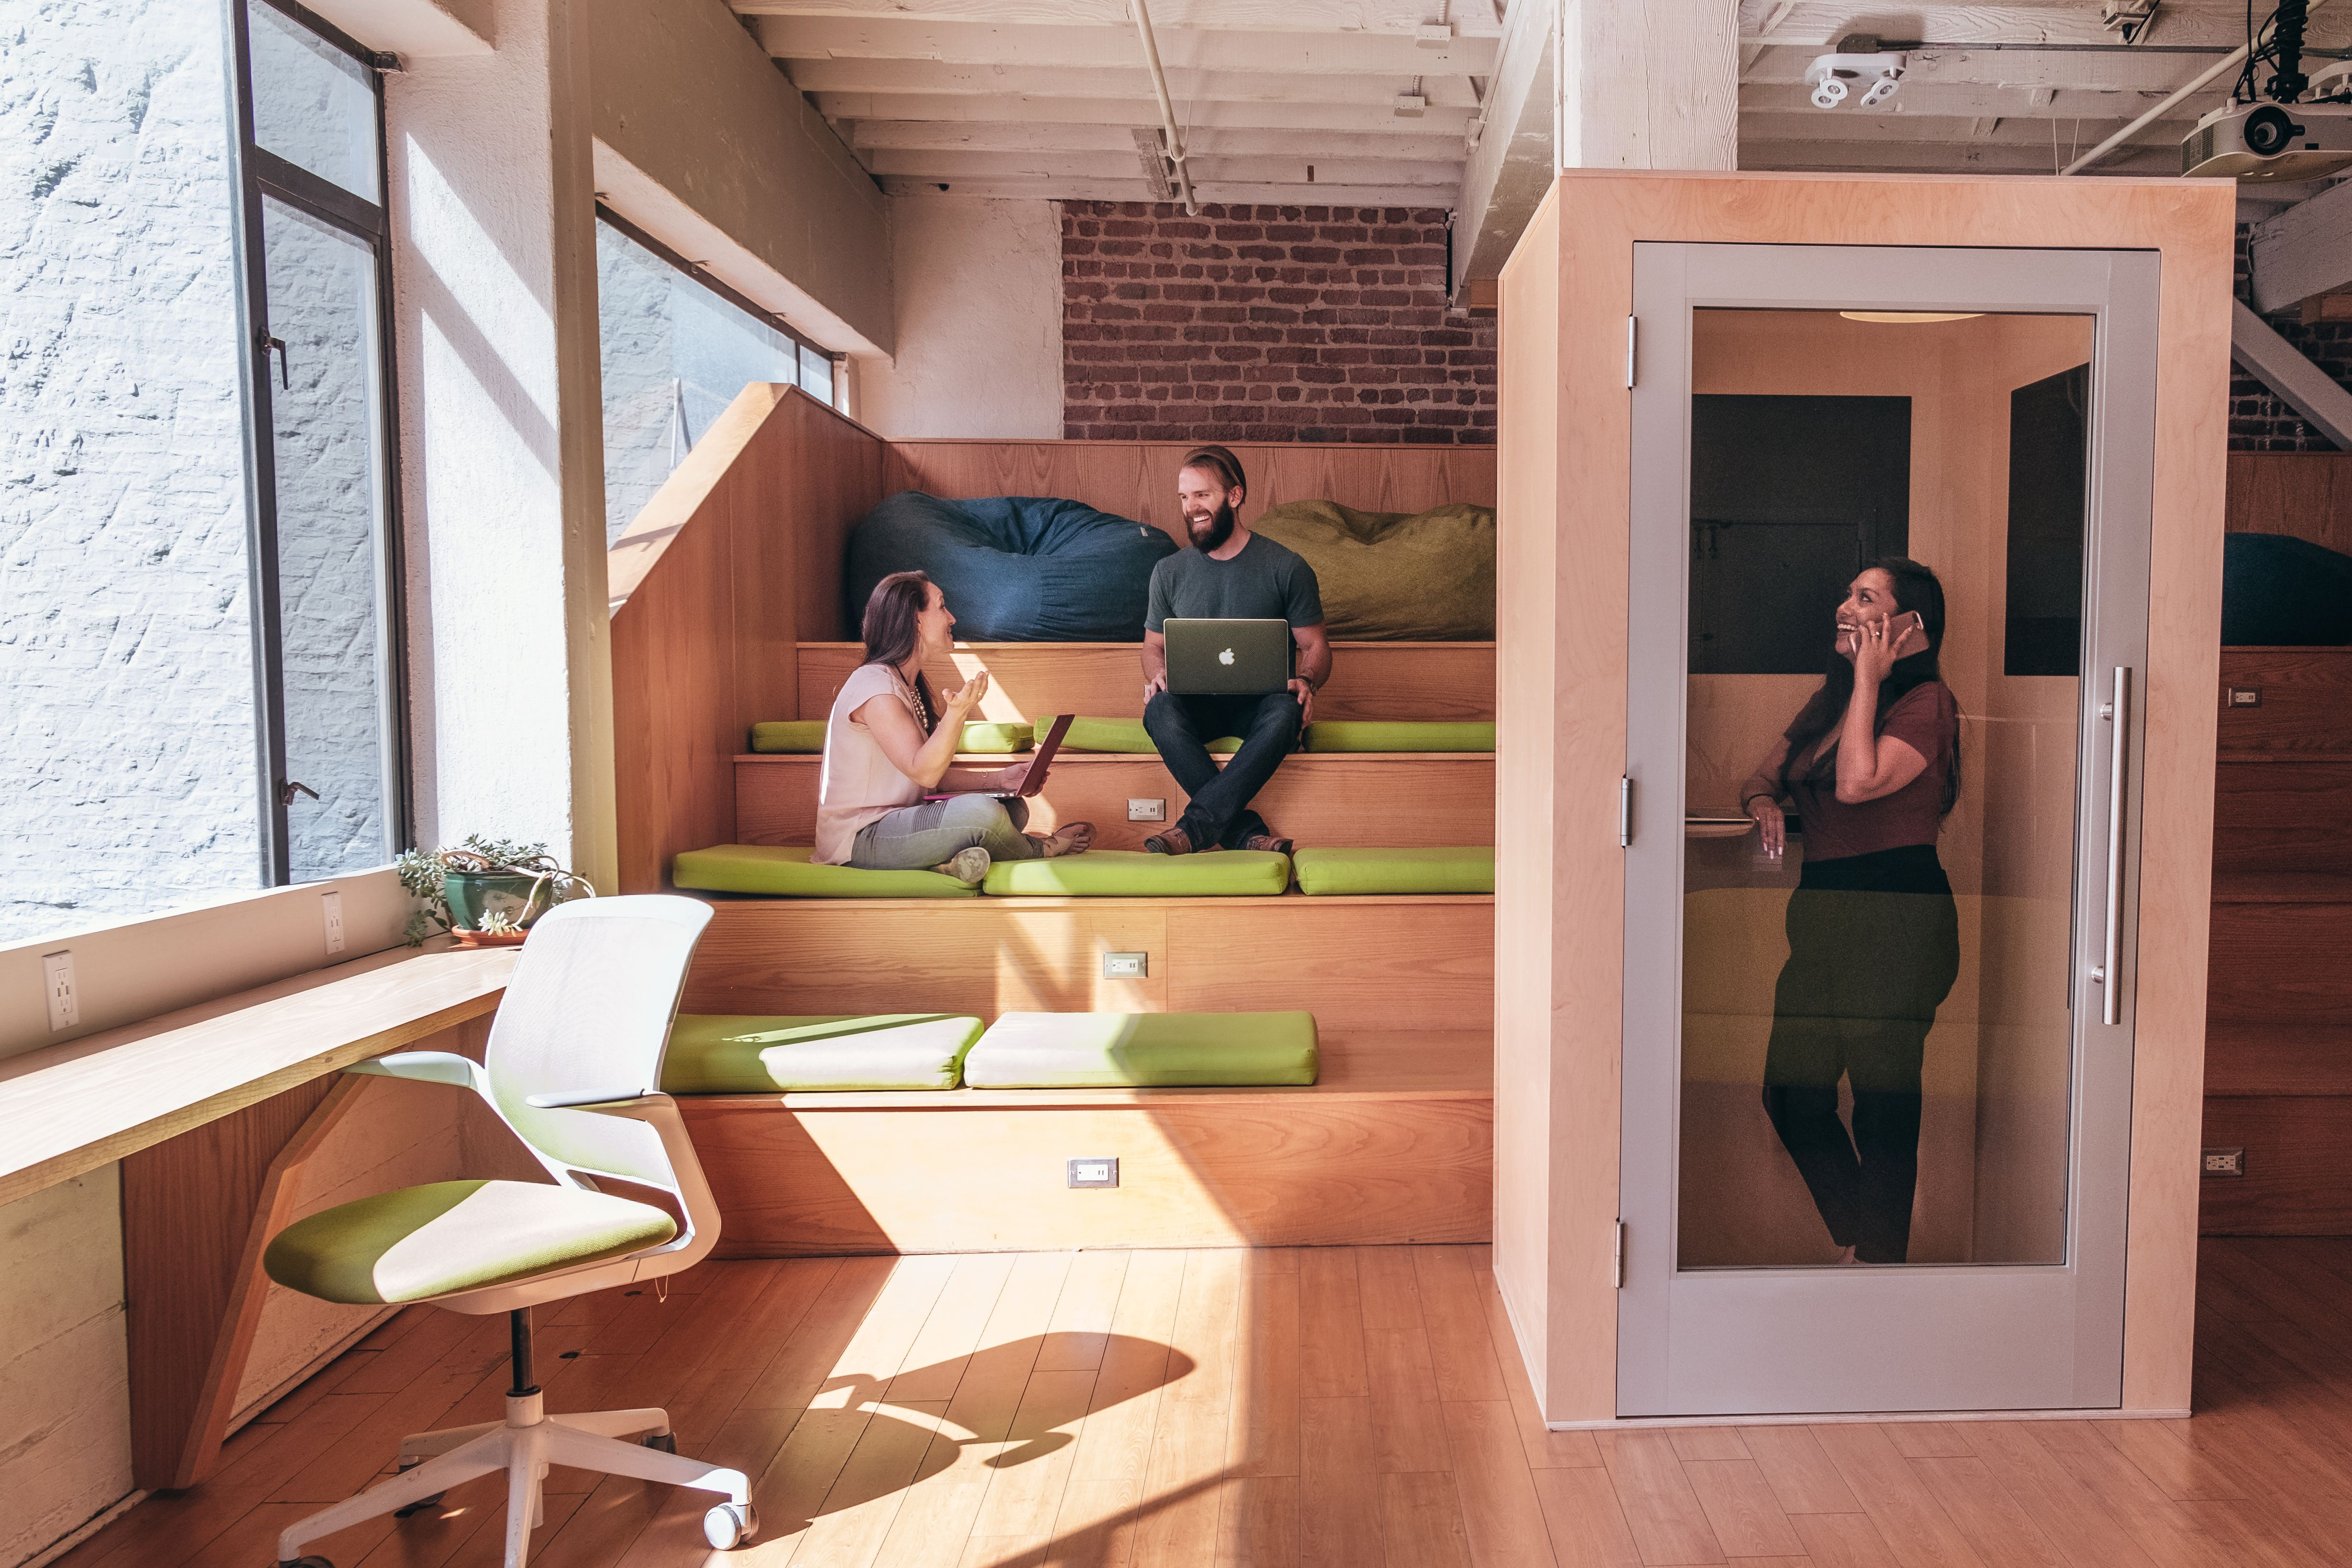 The often-hated open floor plan gets a new savior: The office pod